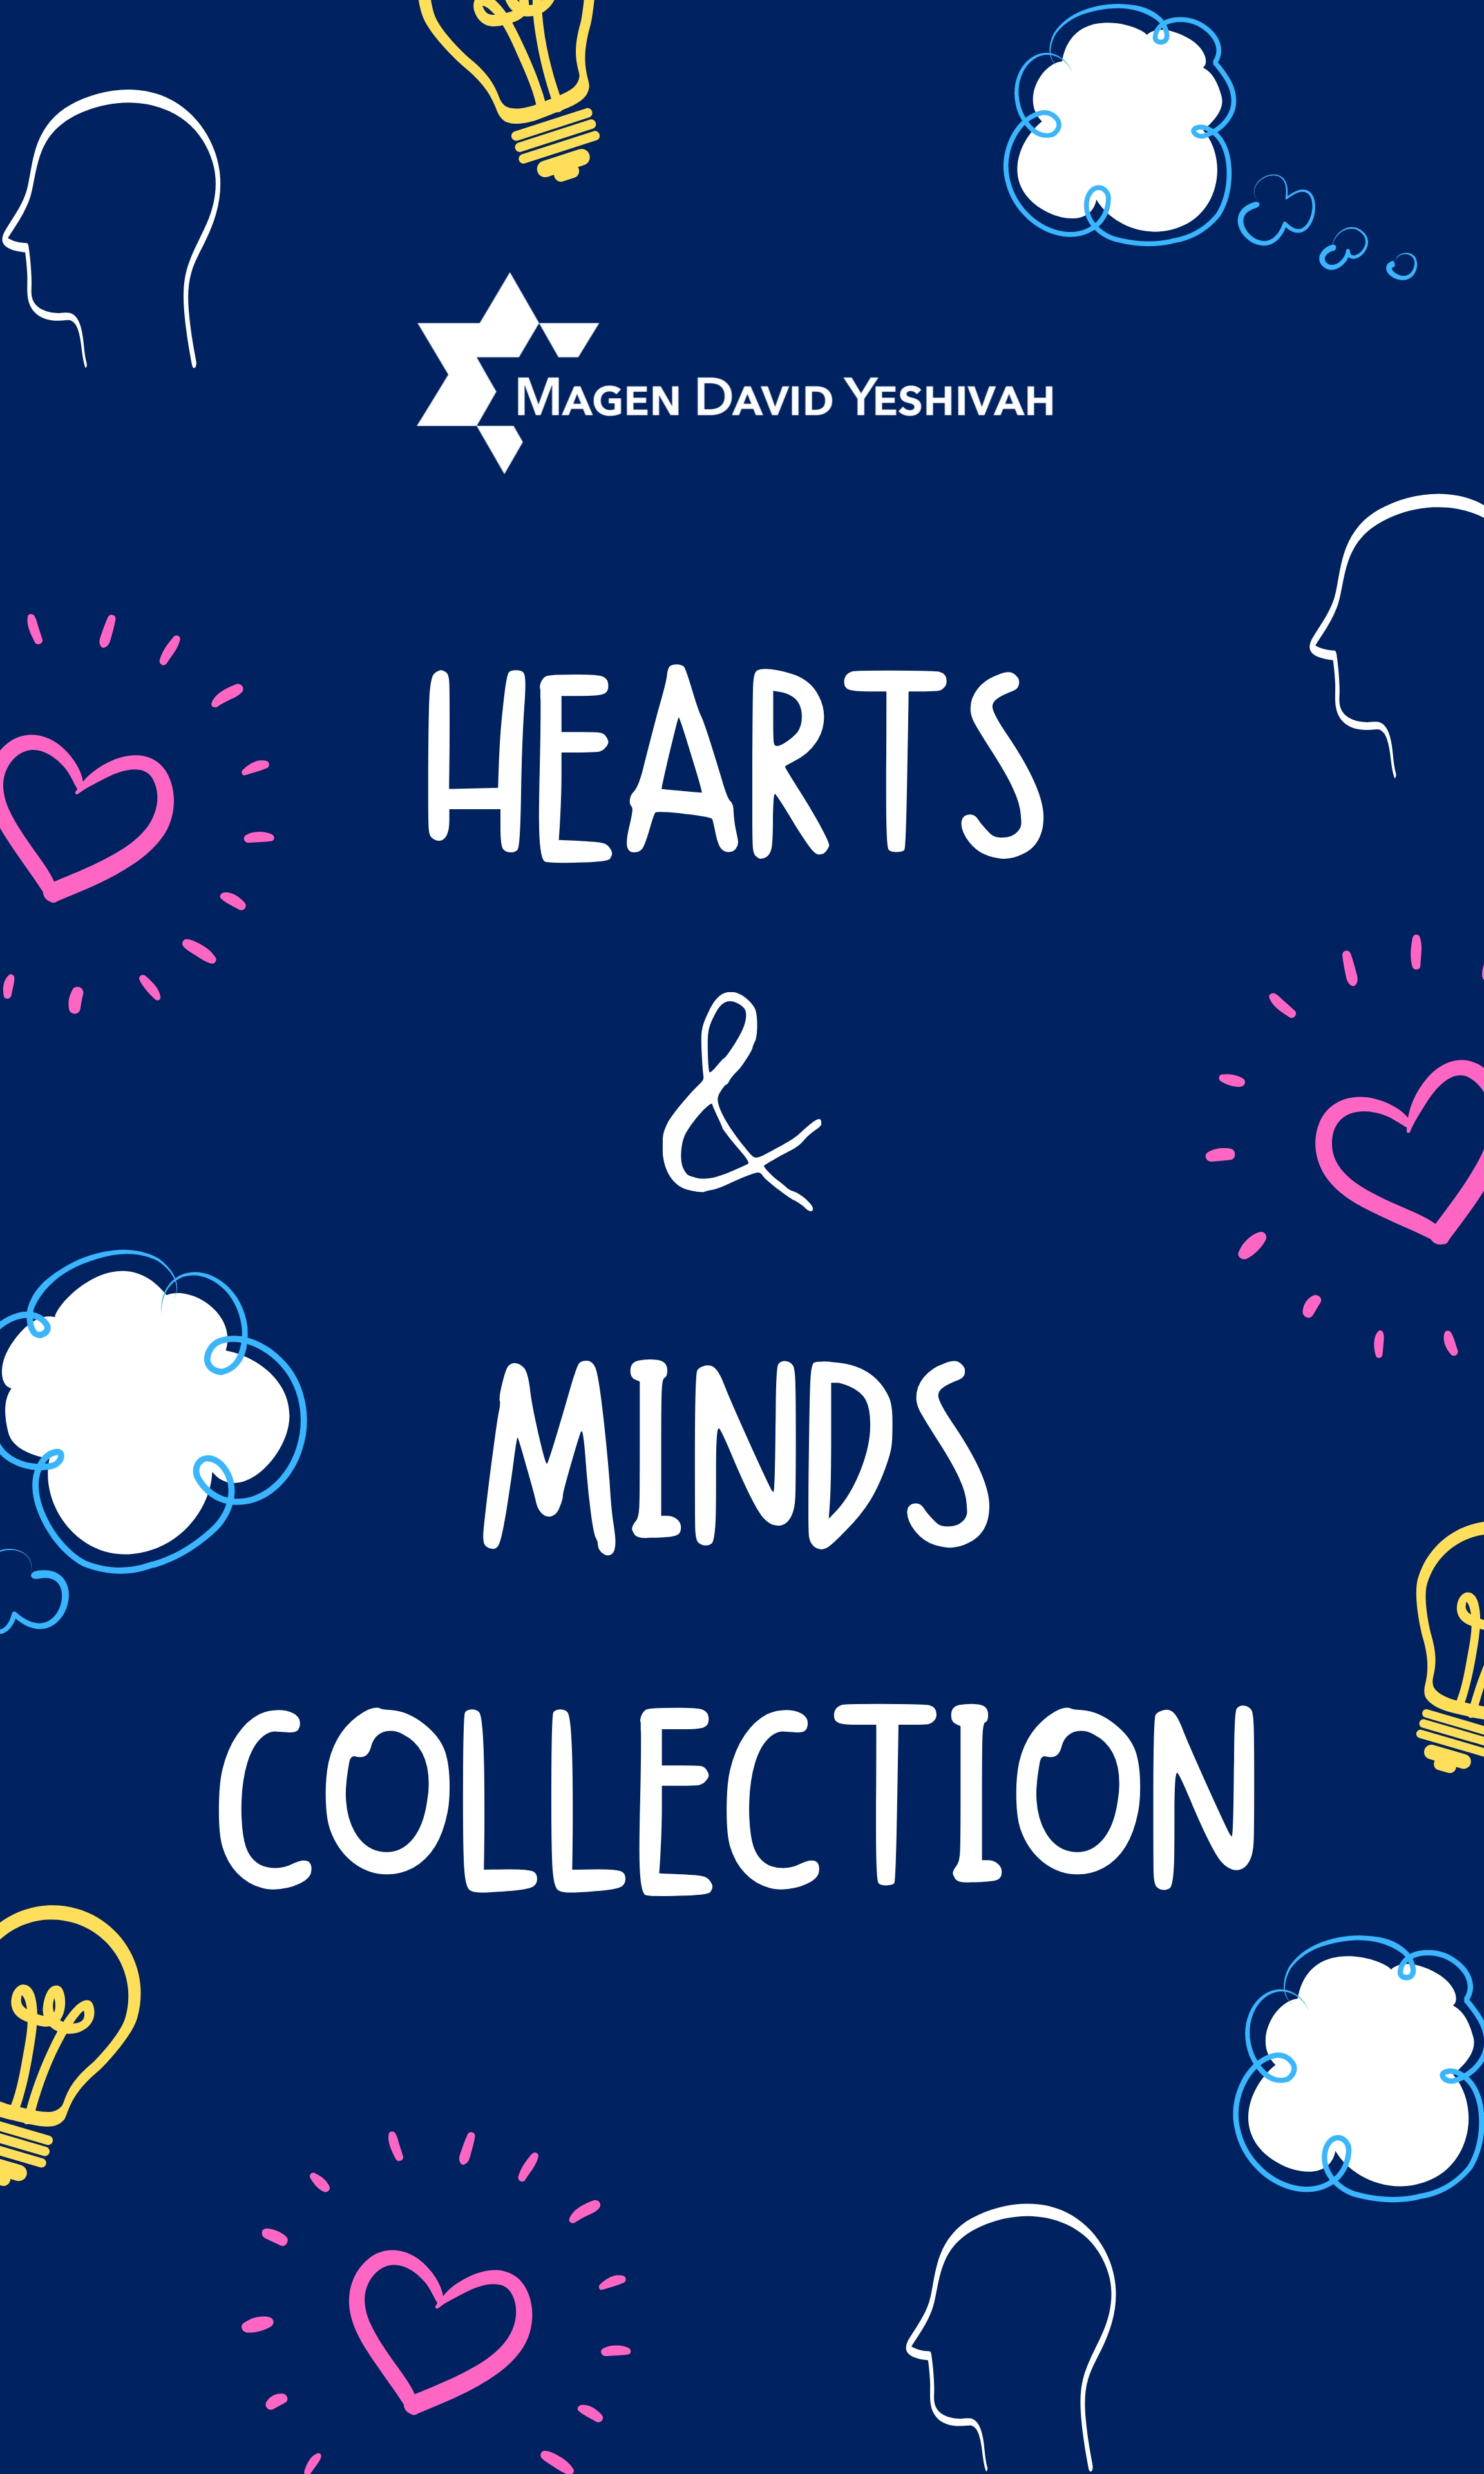 Magen David Yeshivah Hearts and Minds Collection